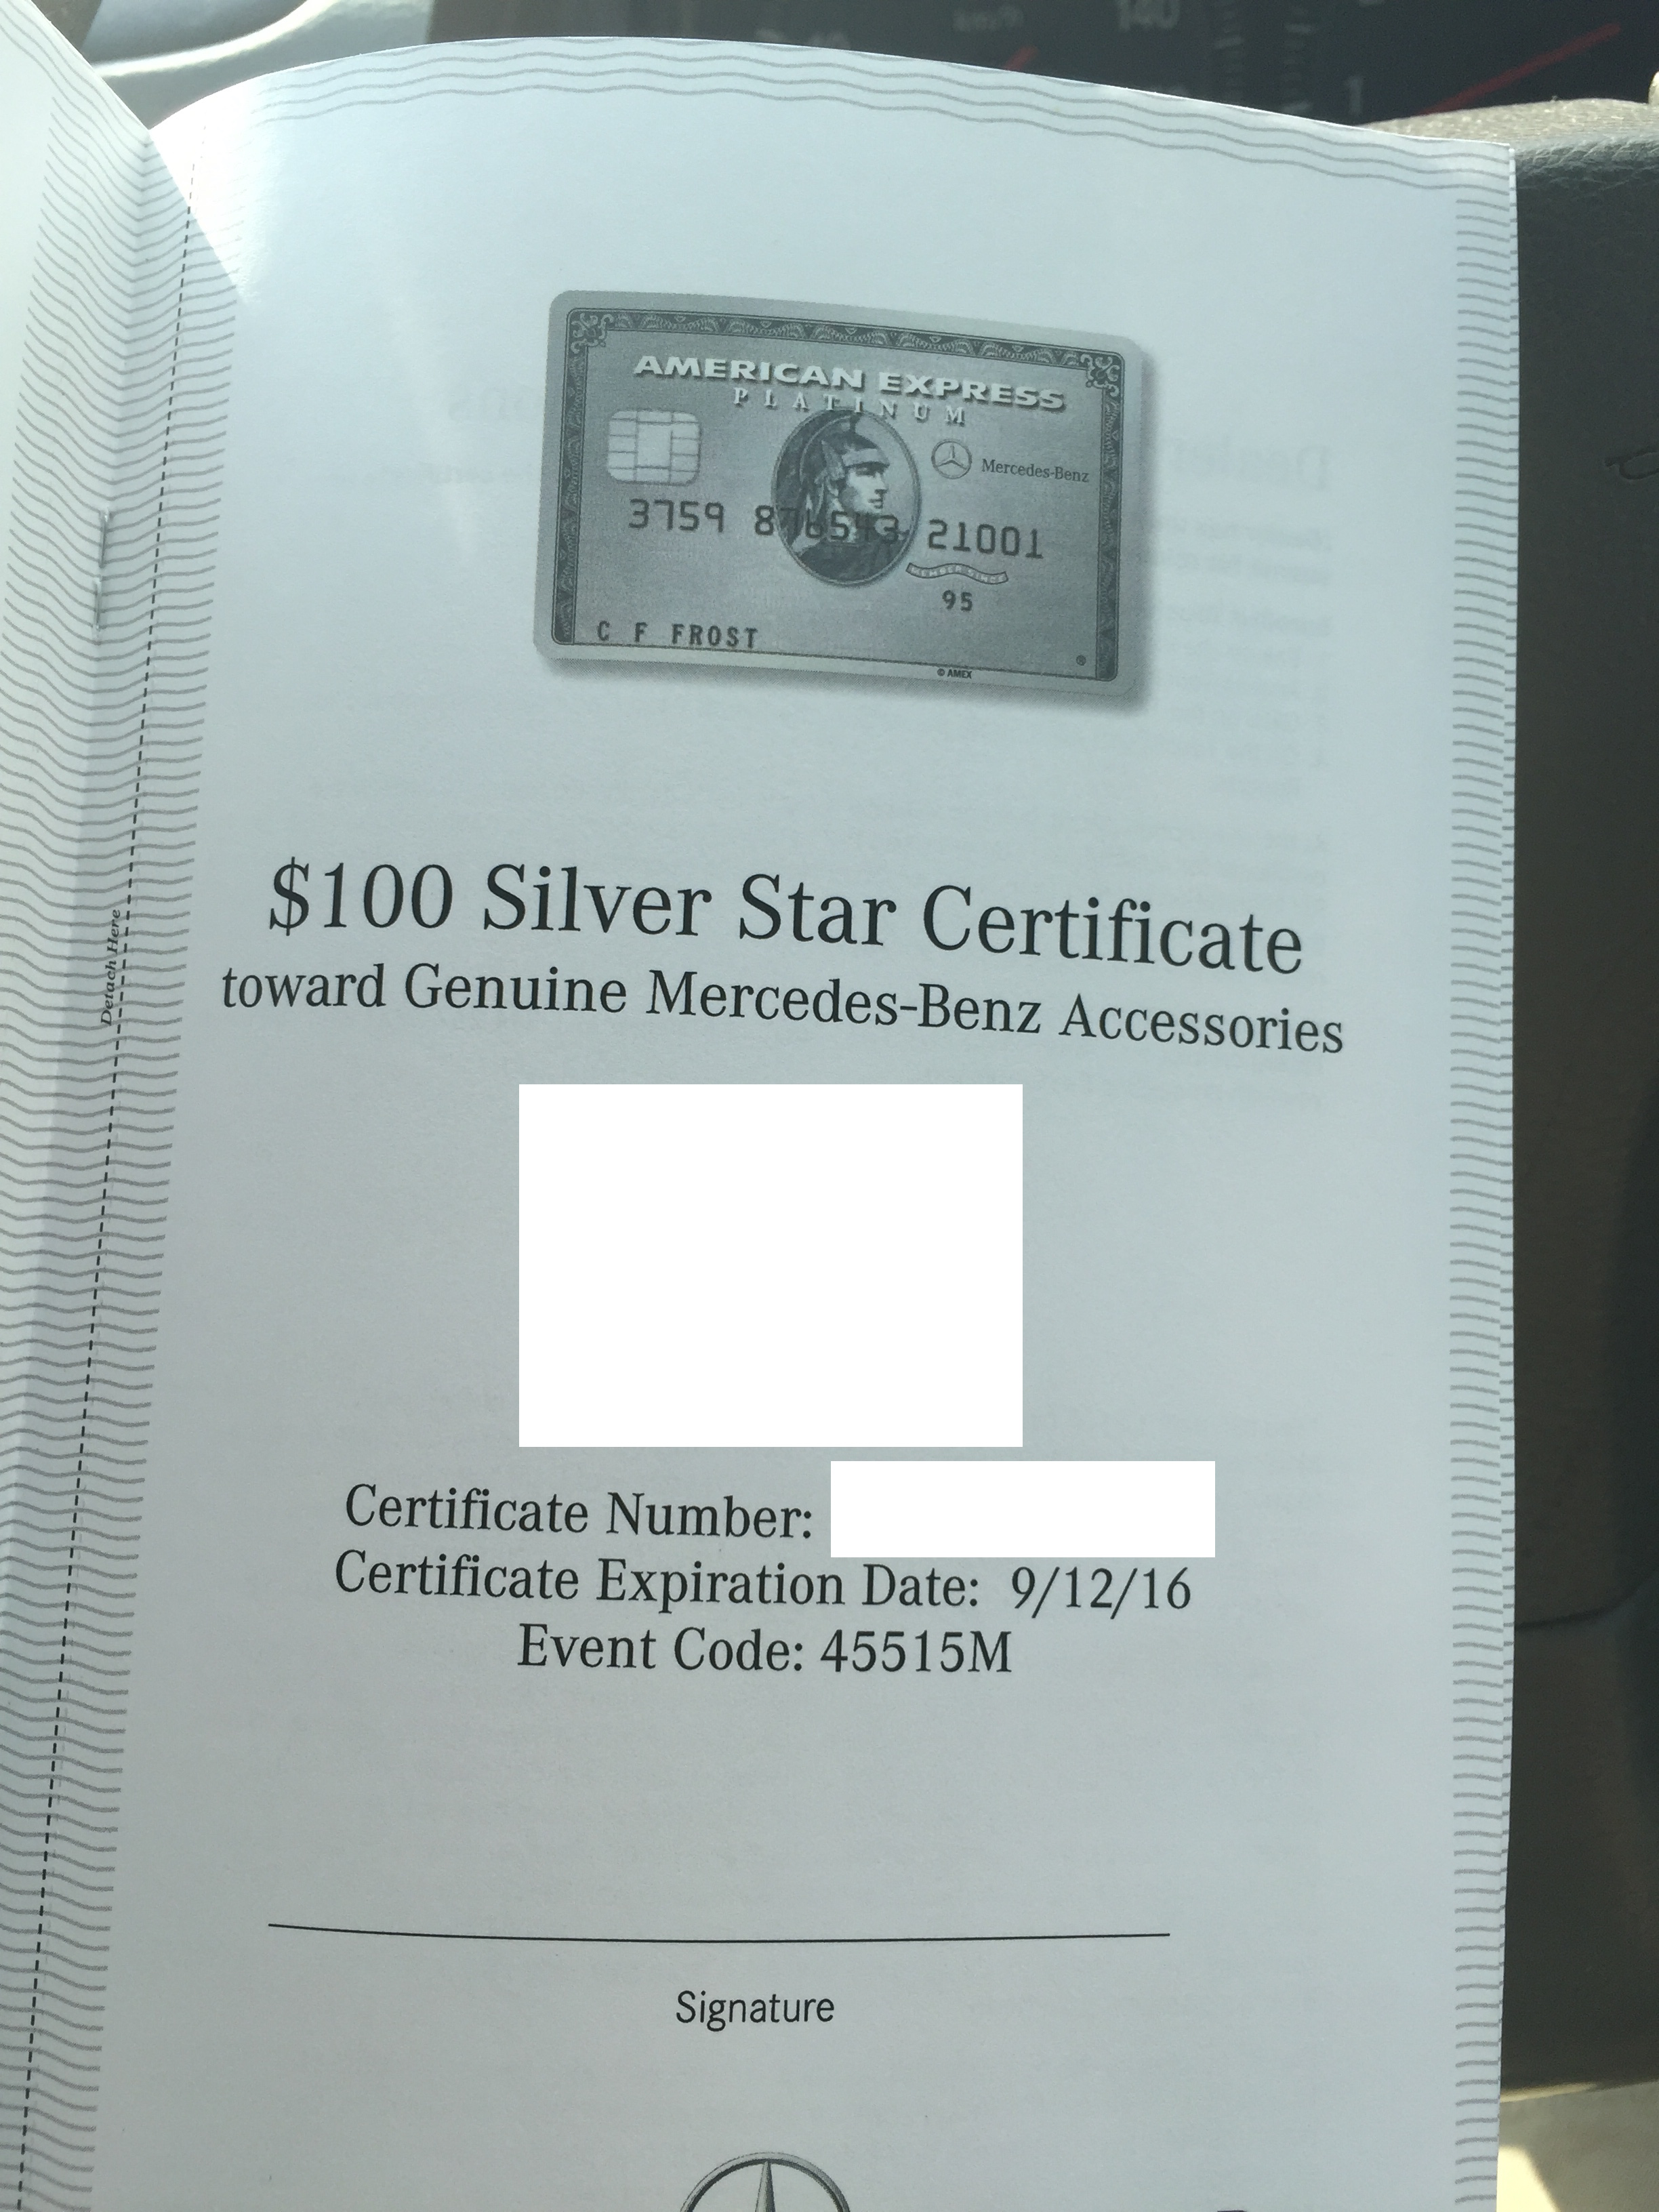 The elusive mercedes benz platinum american express card for Mercedes benz credit score requirements